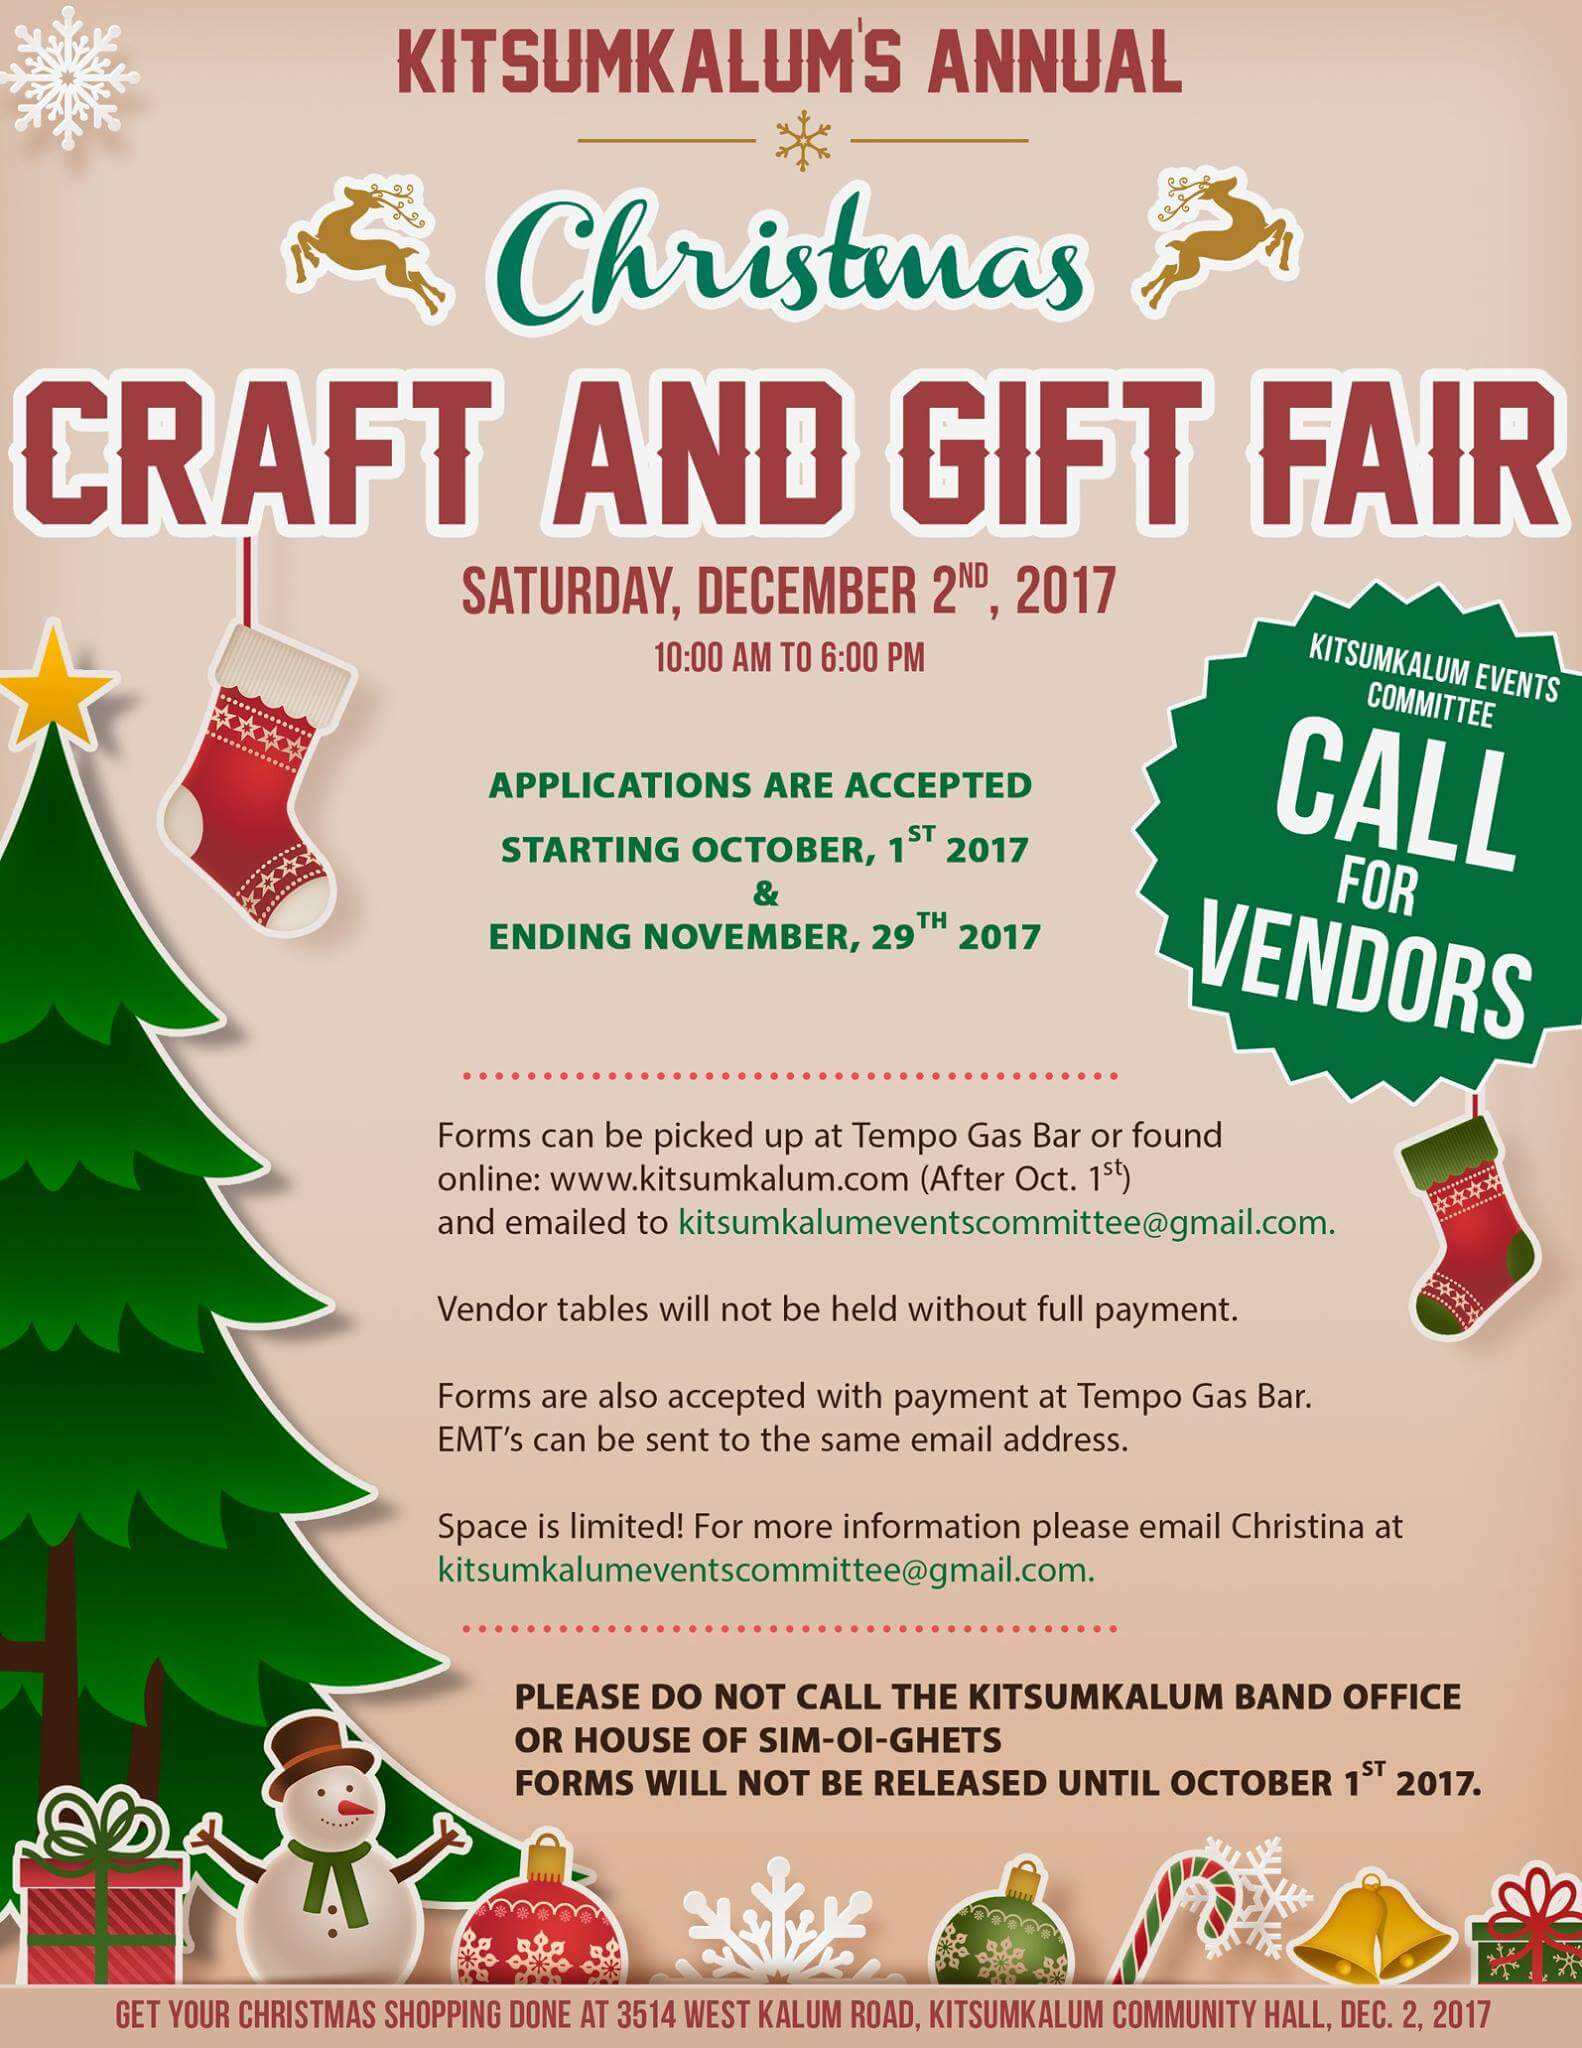 Christmas Craft and Gift Fair – Call for Vendors